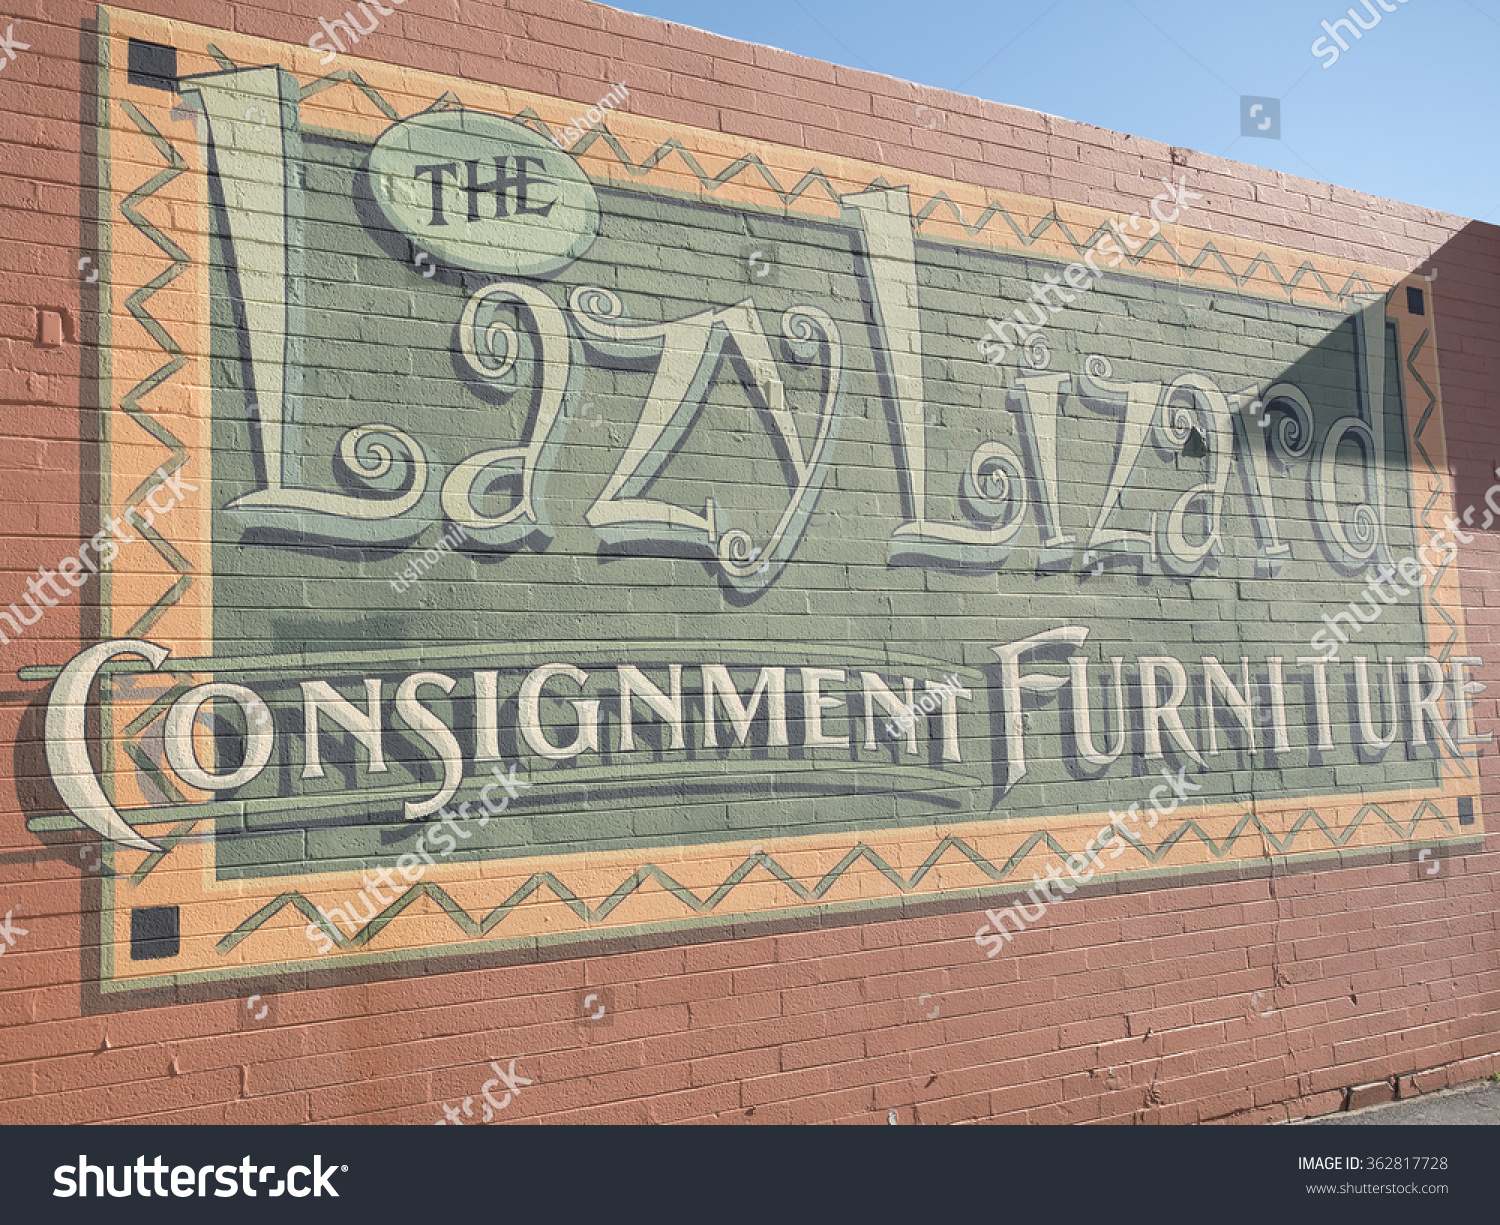 Good Cave Creek, Arizona, USA   14.01.2016: Lazy Lizard Consignment Furniture  Advertisement